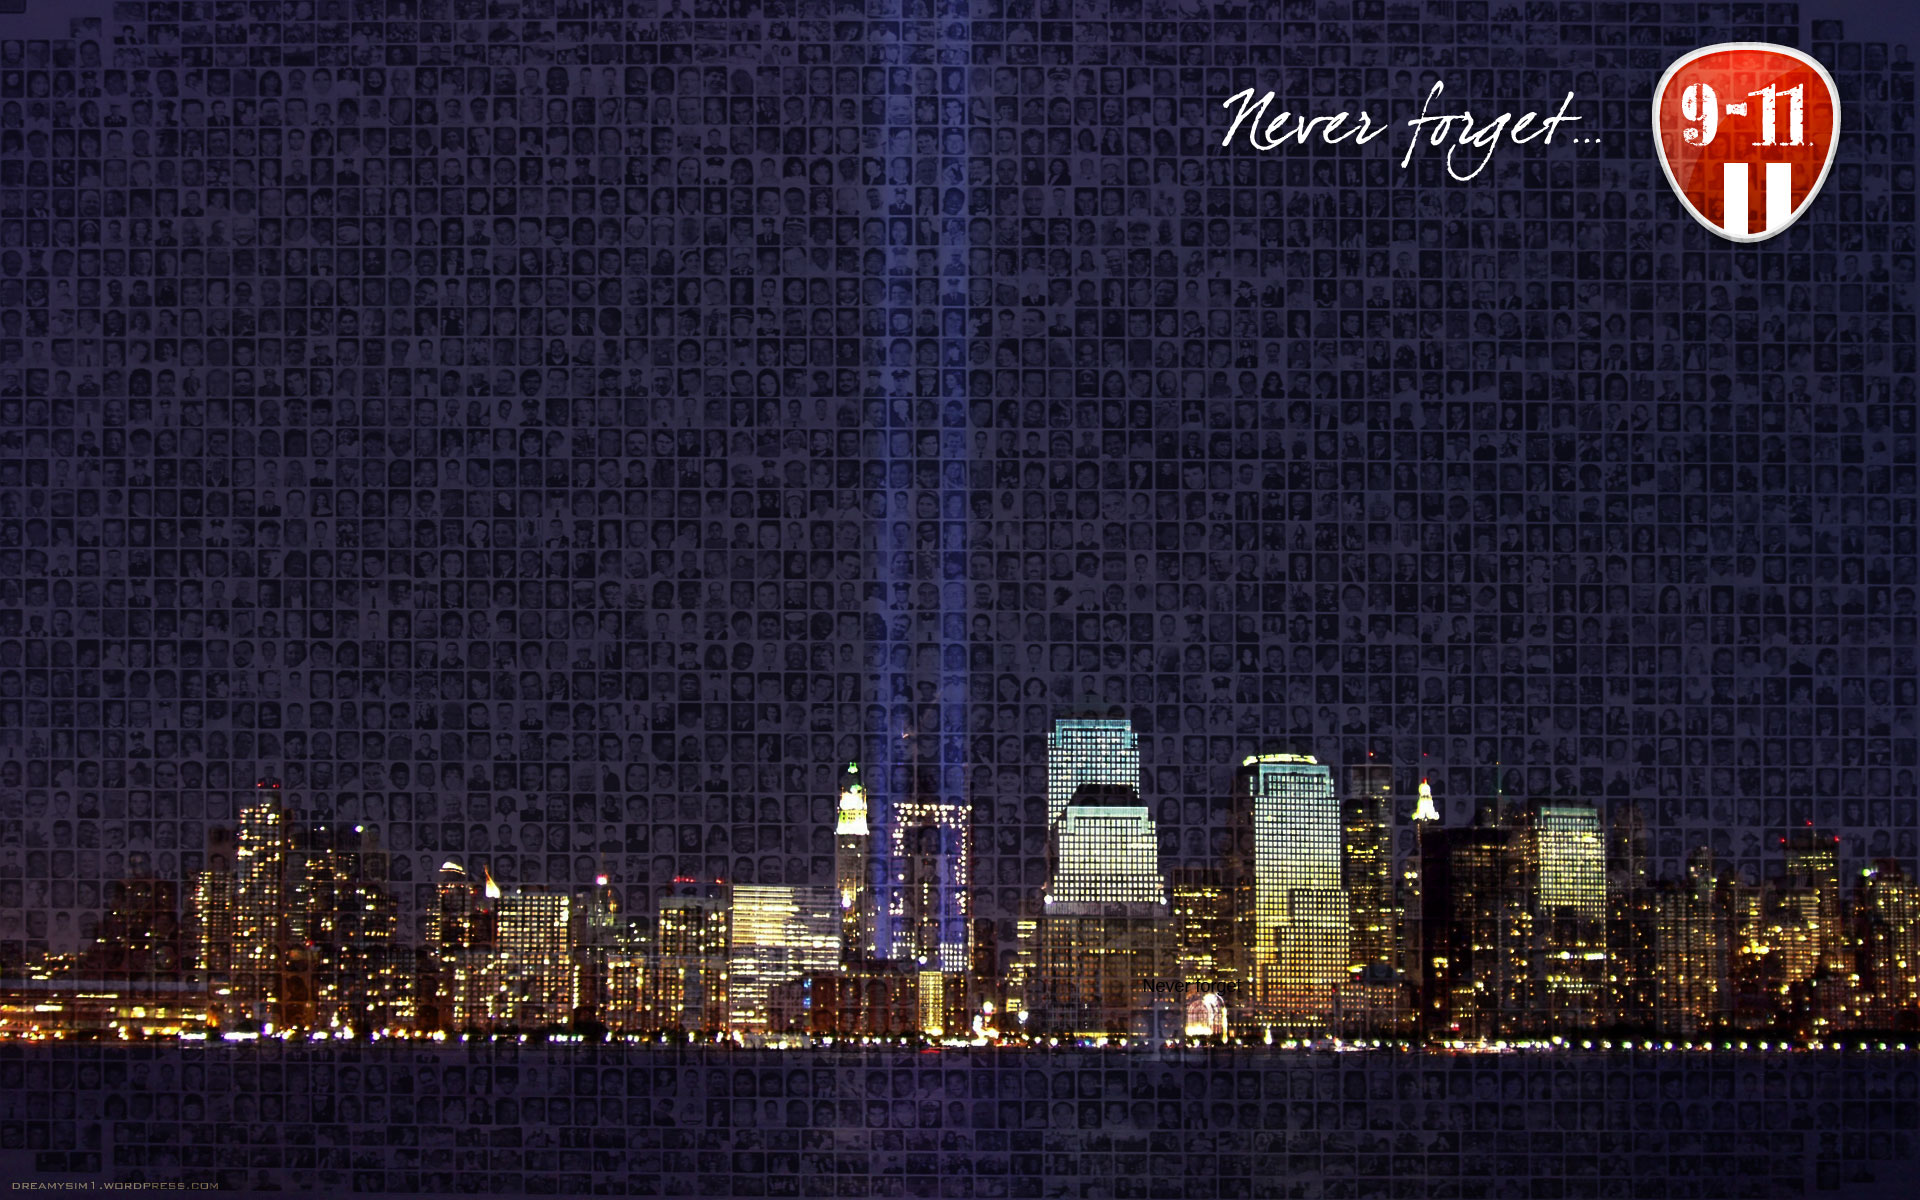 11 Tribute Wallpaper Remembering 911 ten years 1920x1200